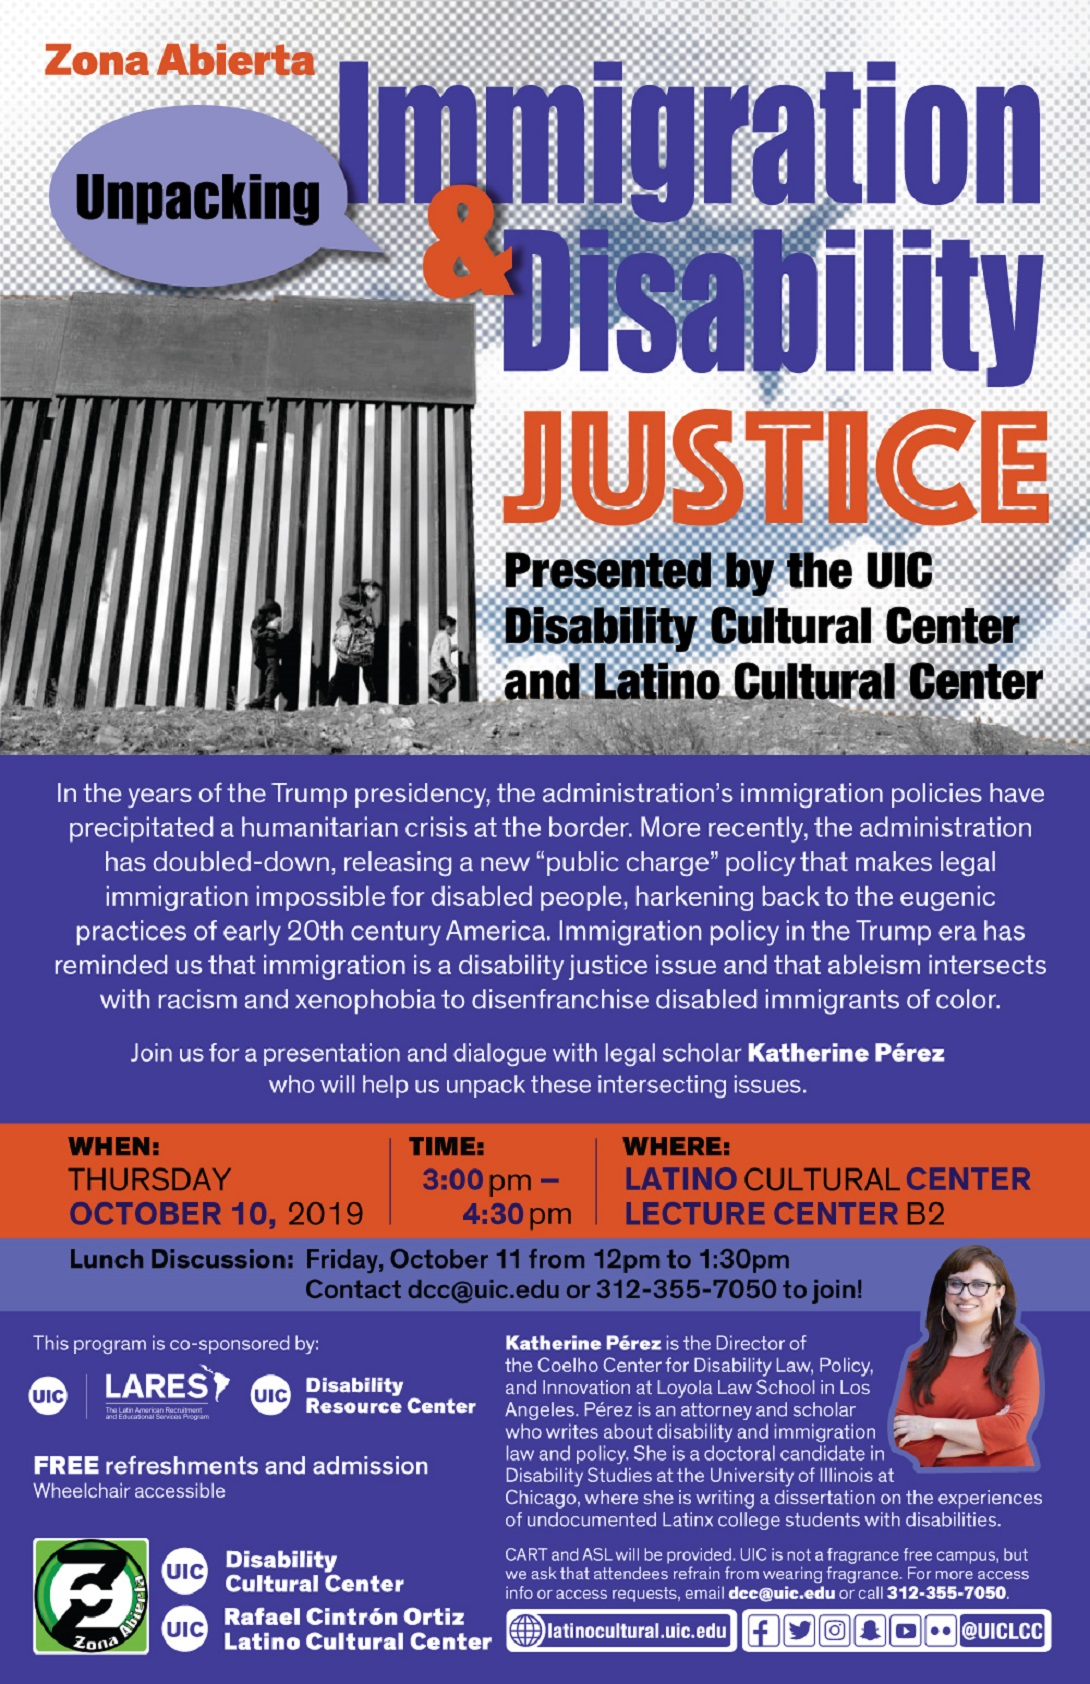 Unpacking Immigration & Disability Justice flyer